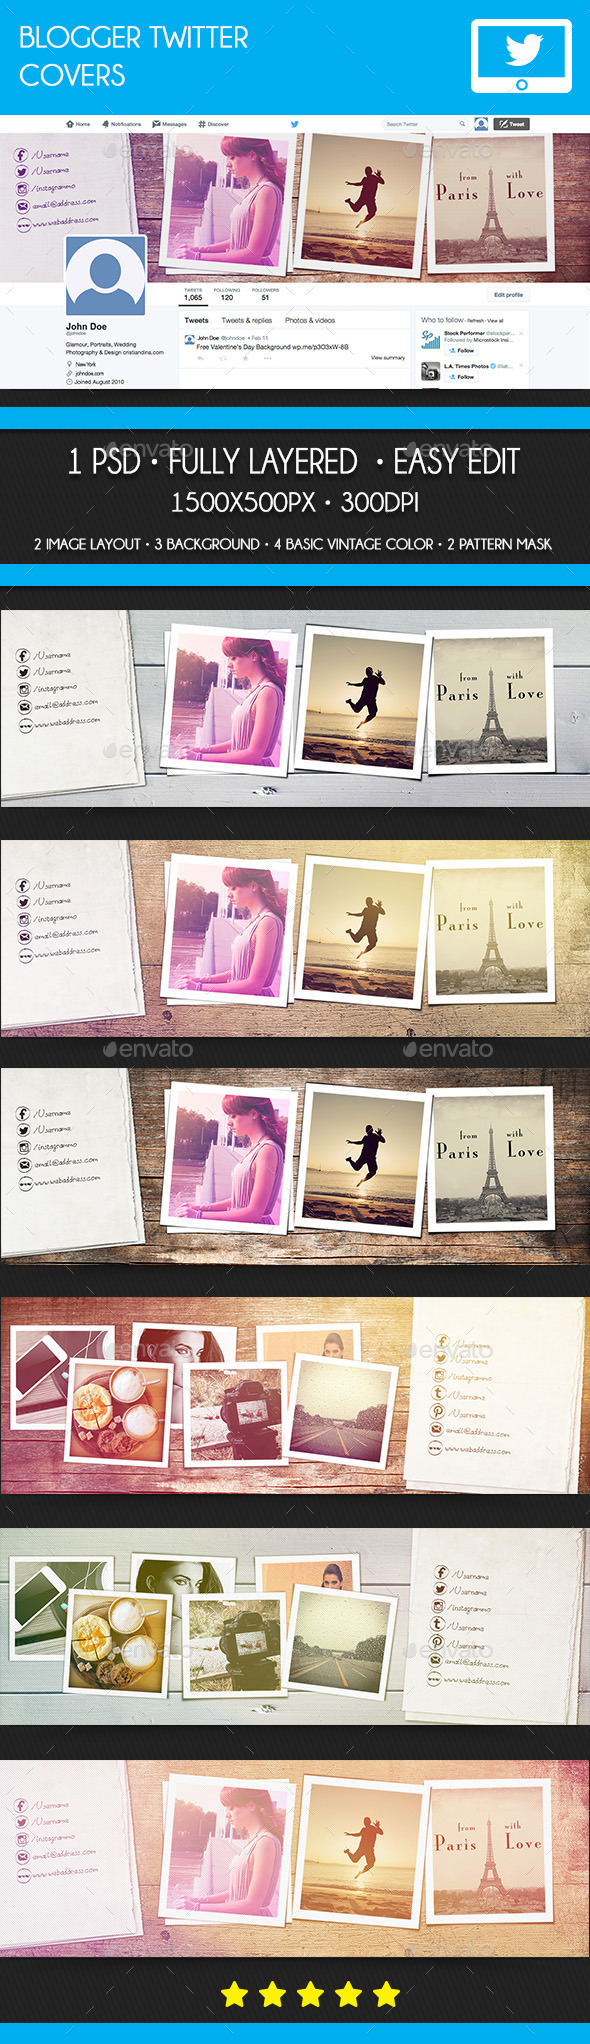 GraphicRiver Blogger Twitter Covers 10513920